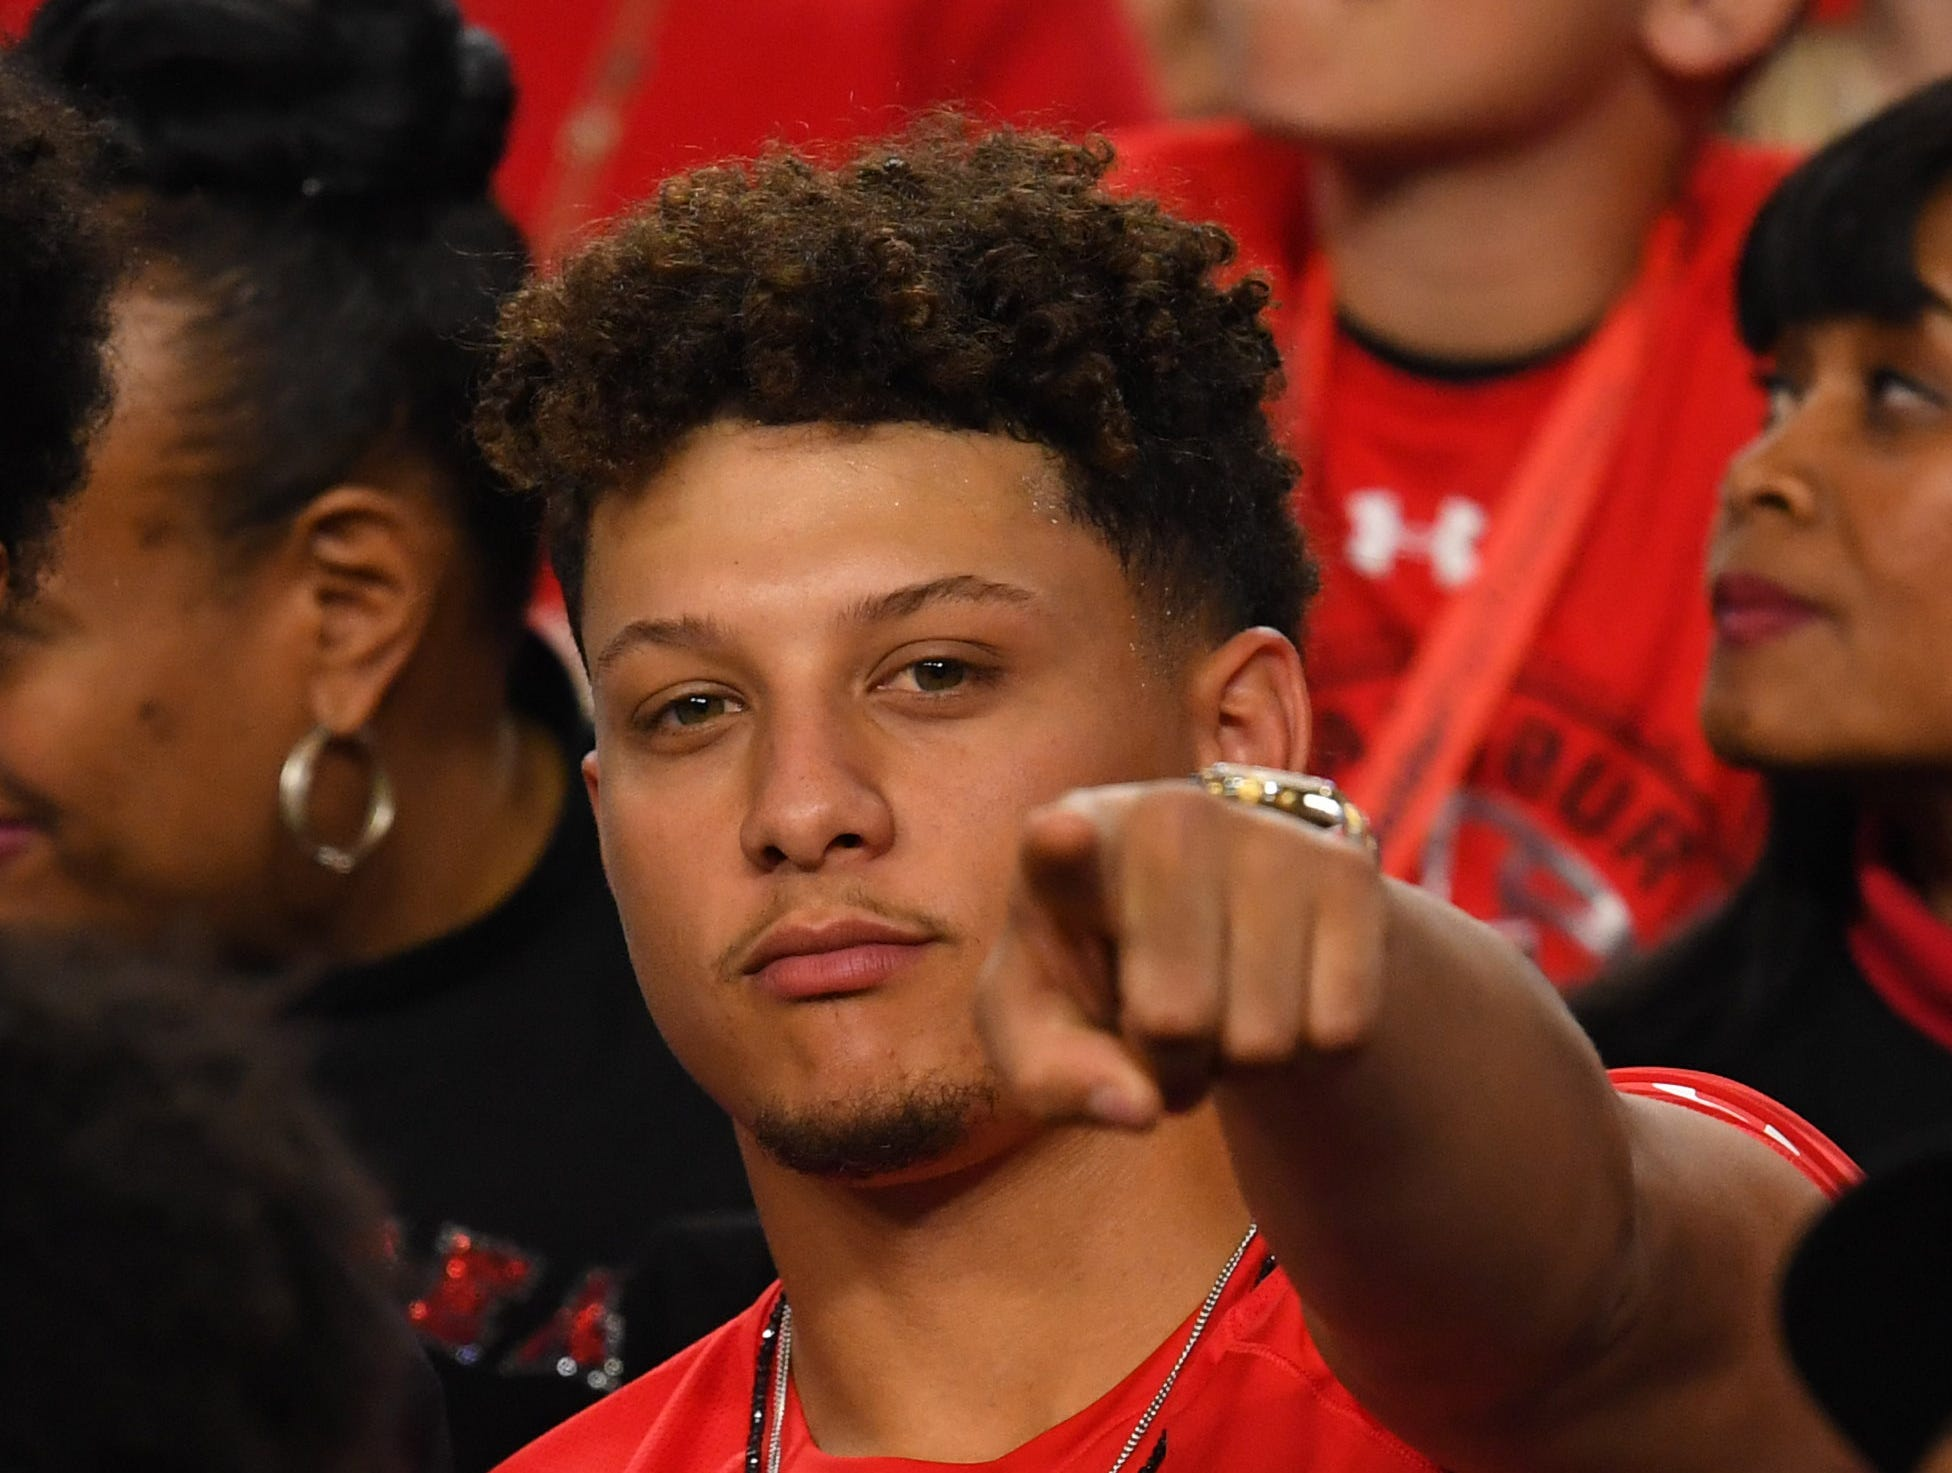 Apr 6, 2019; Minneapolis, MN, USA; Kansas City Chiefs quarterback and former Texas Tech Raiders quarterback Patrick Mahomes poses for a photo before the start of the semifinals against the Michigan State Spartans of the 2019 men's Final Four at US Bank Stadium. Mandatory Credit: Robert Deutsch-USA TODAY Sports